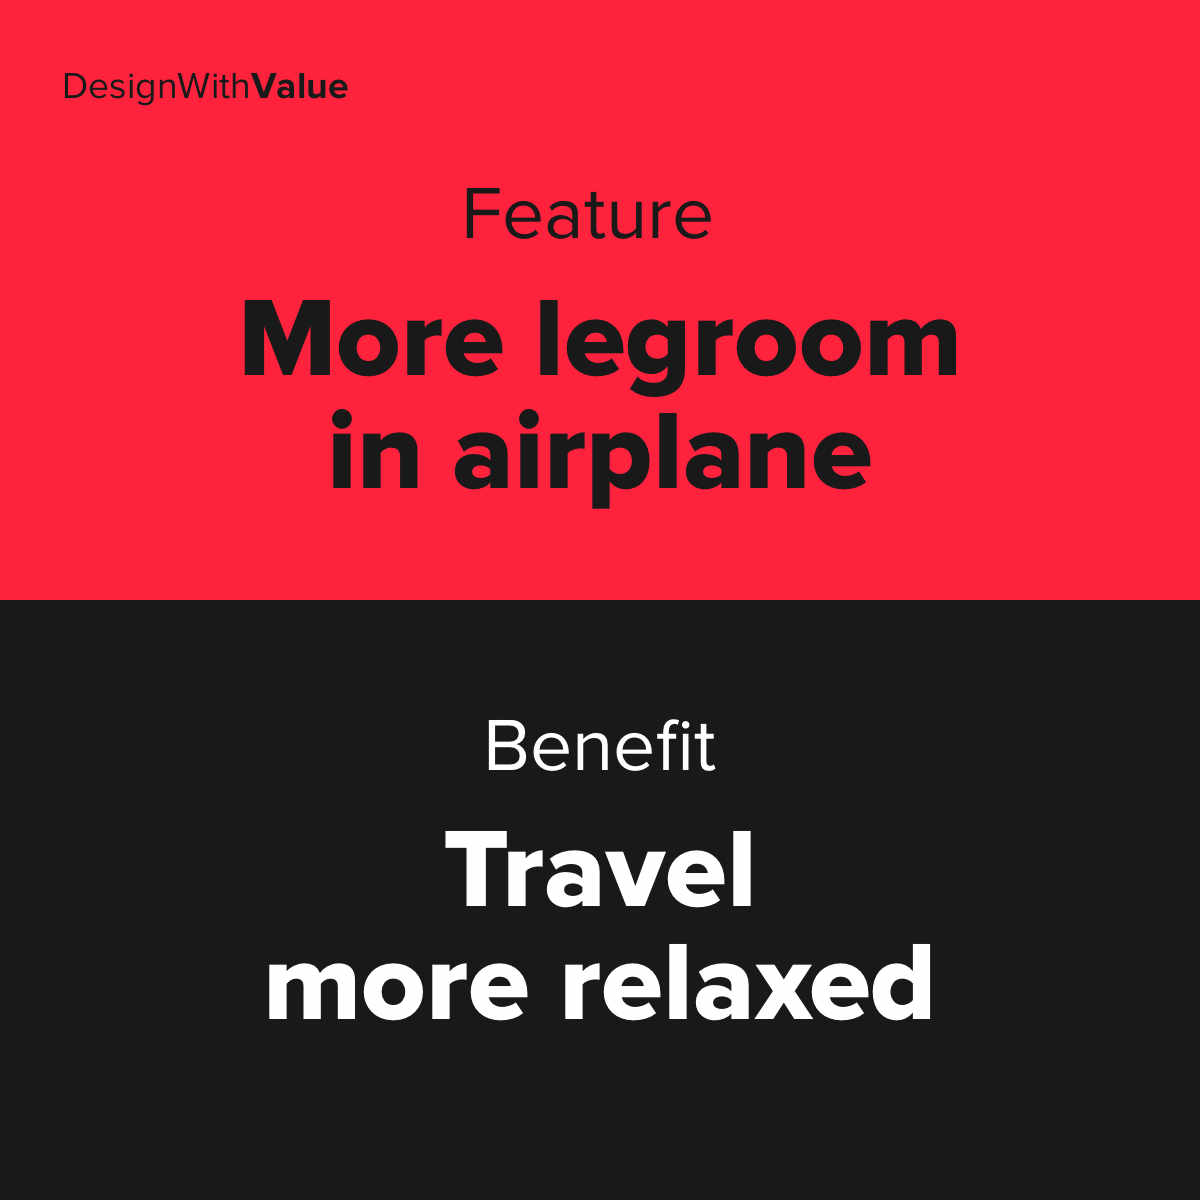 Feature example: More legroom in airplane. Benefit example: Travel more relaxed.